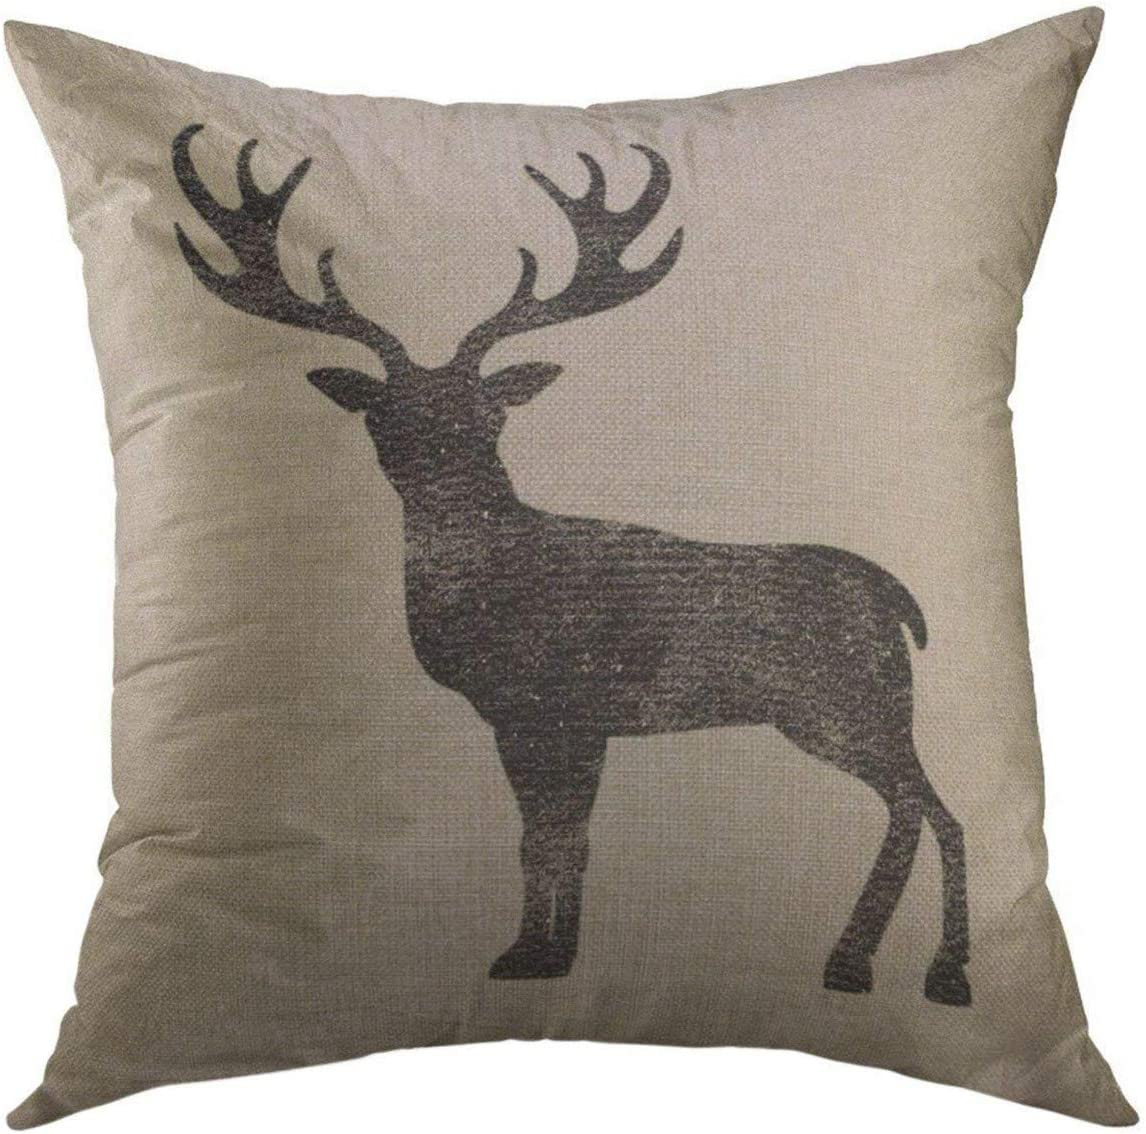 Mugod Decorative Throw Pillow Cover for Couch Sofa,Vintage Stag Black Deer Antlers Home Decor Pillow Case 18x18 Inch